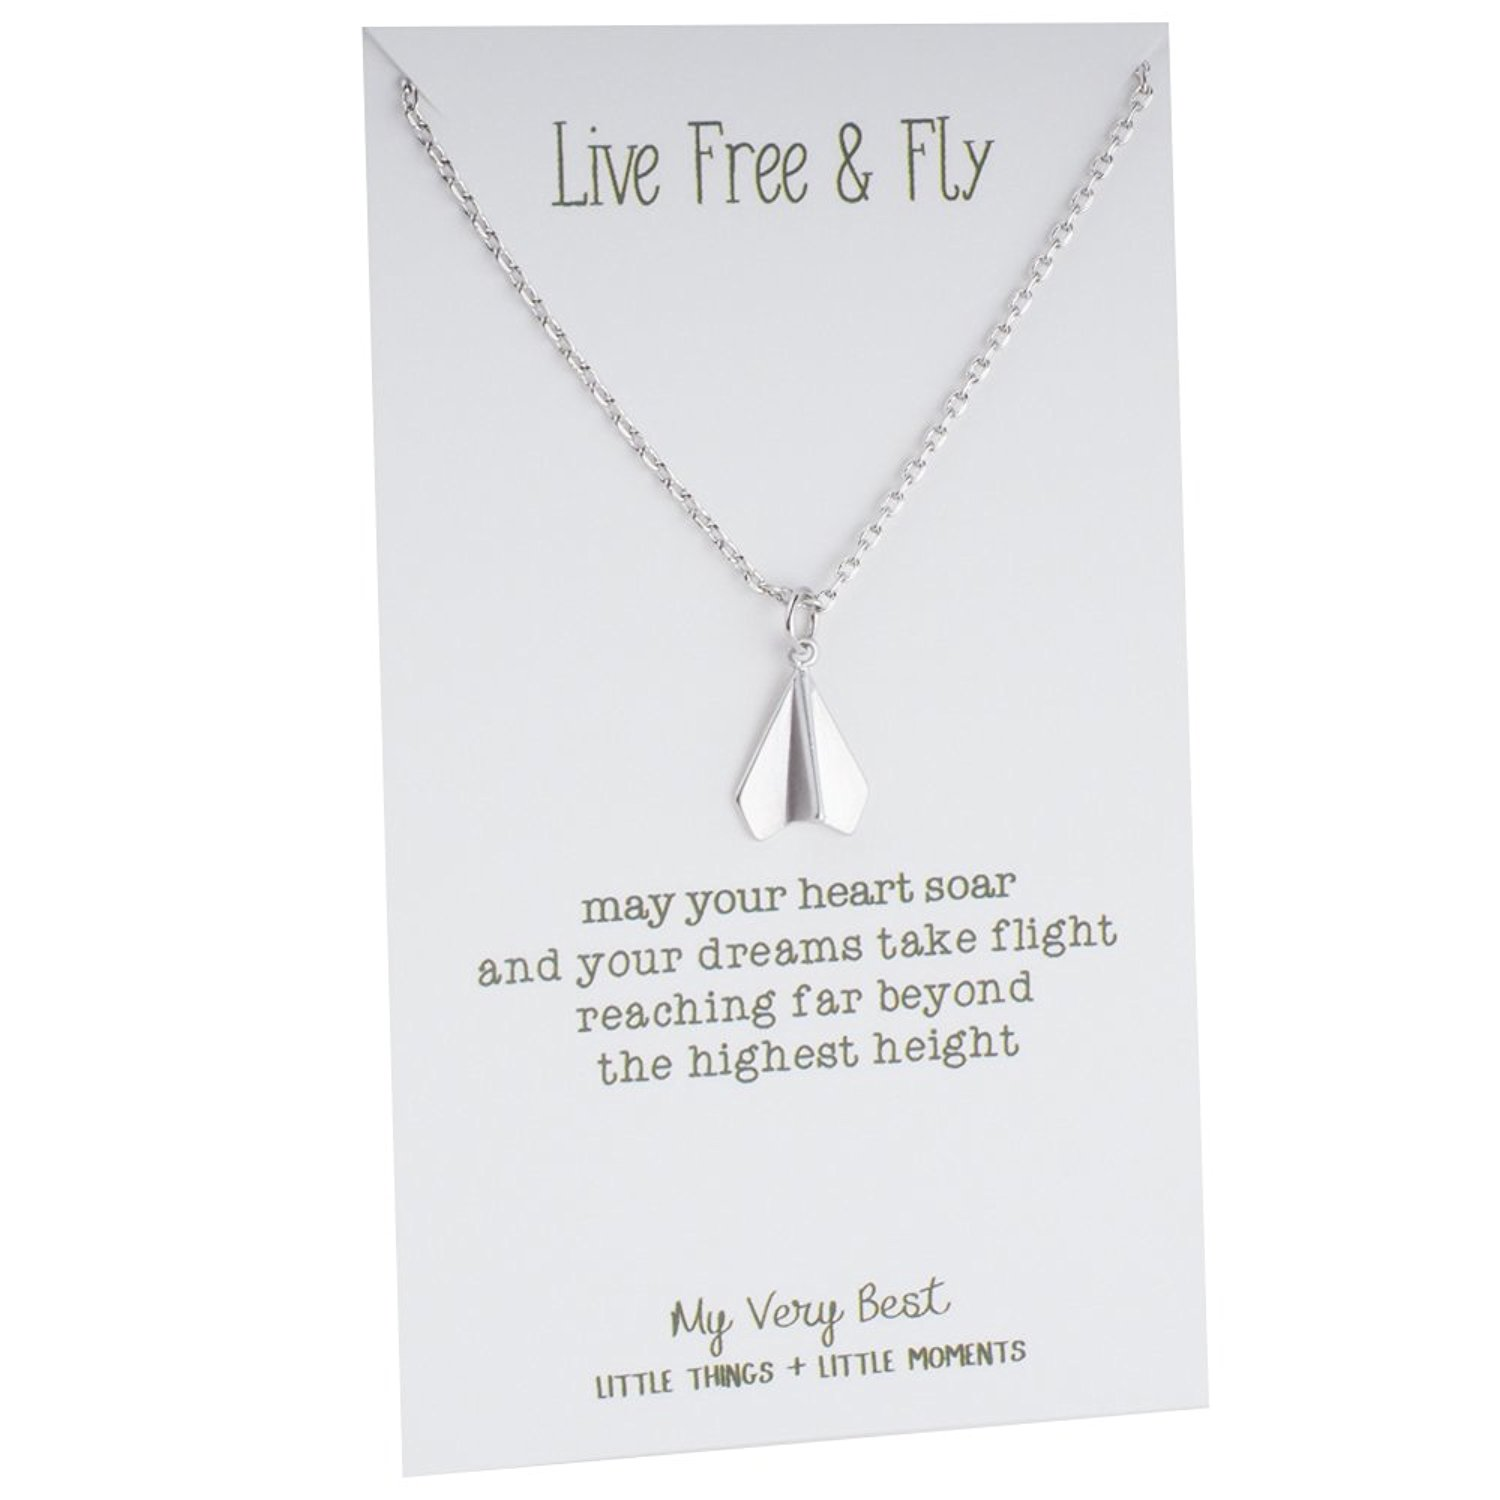 My Very Best Paper Plane Necklace